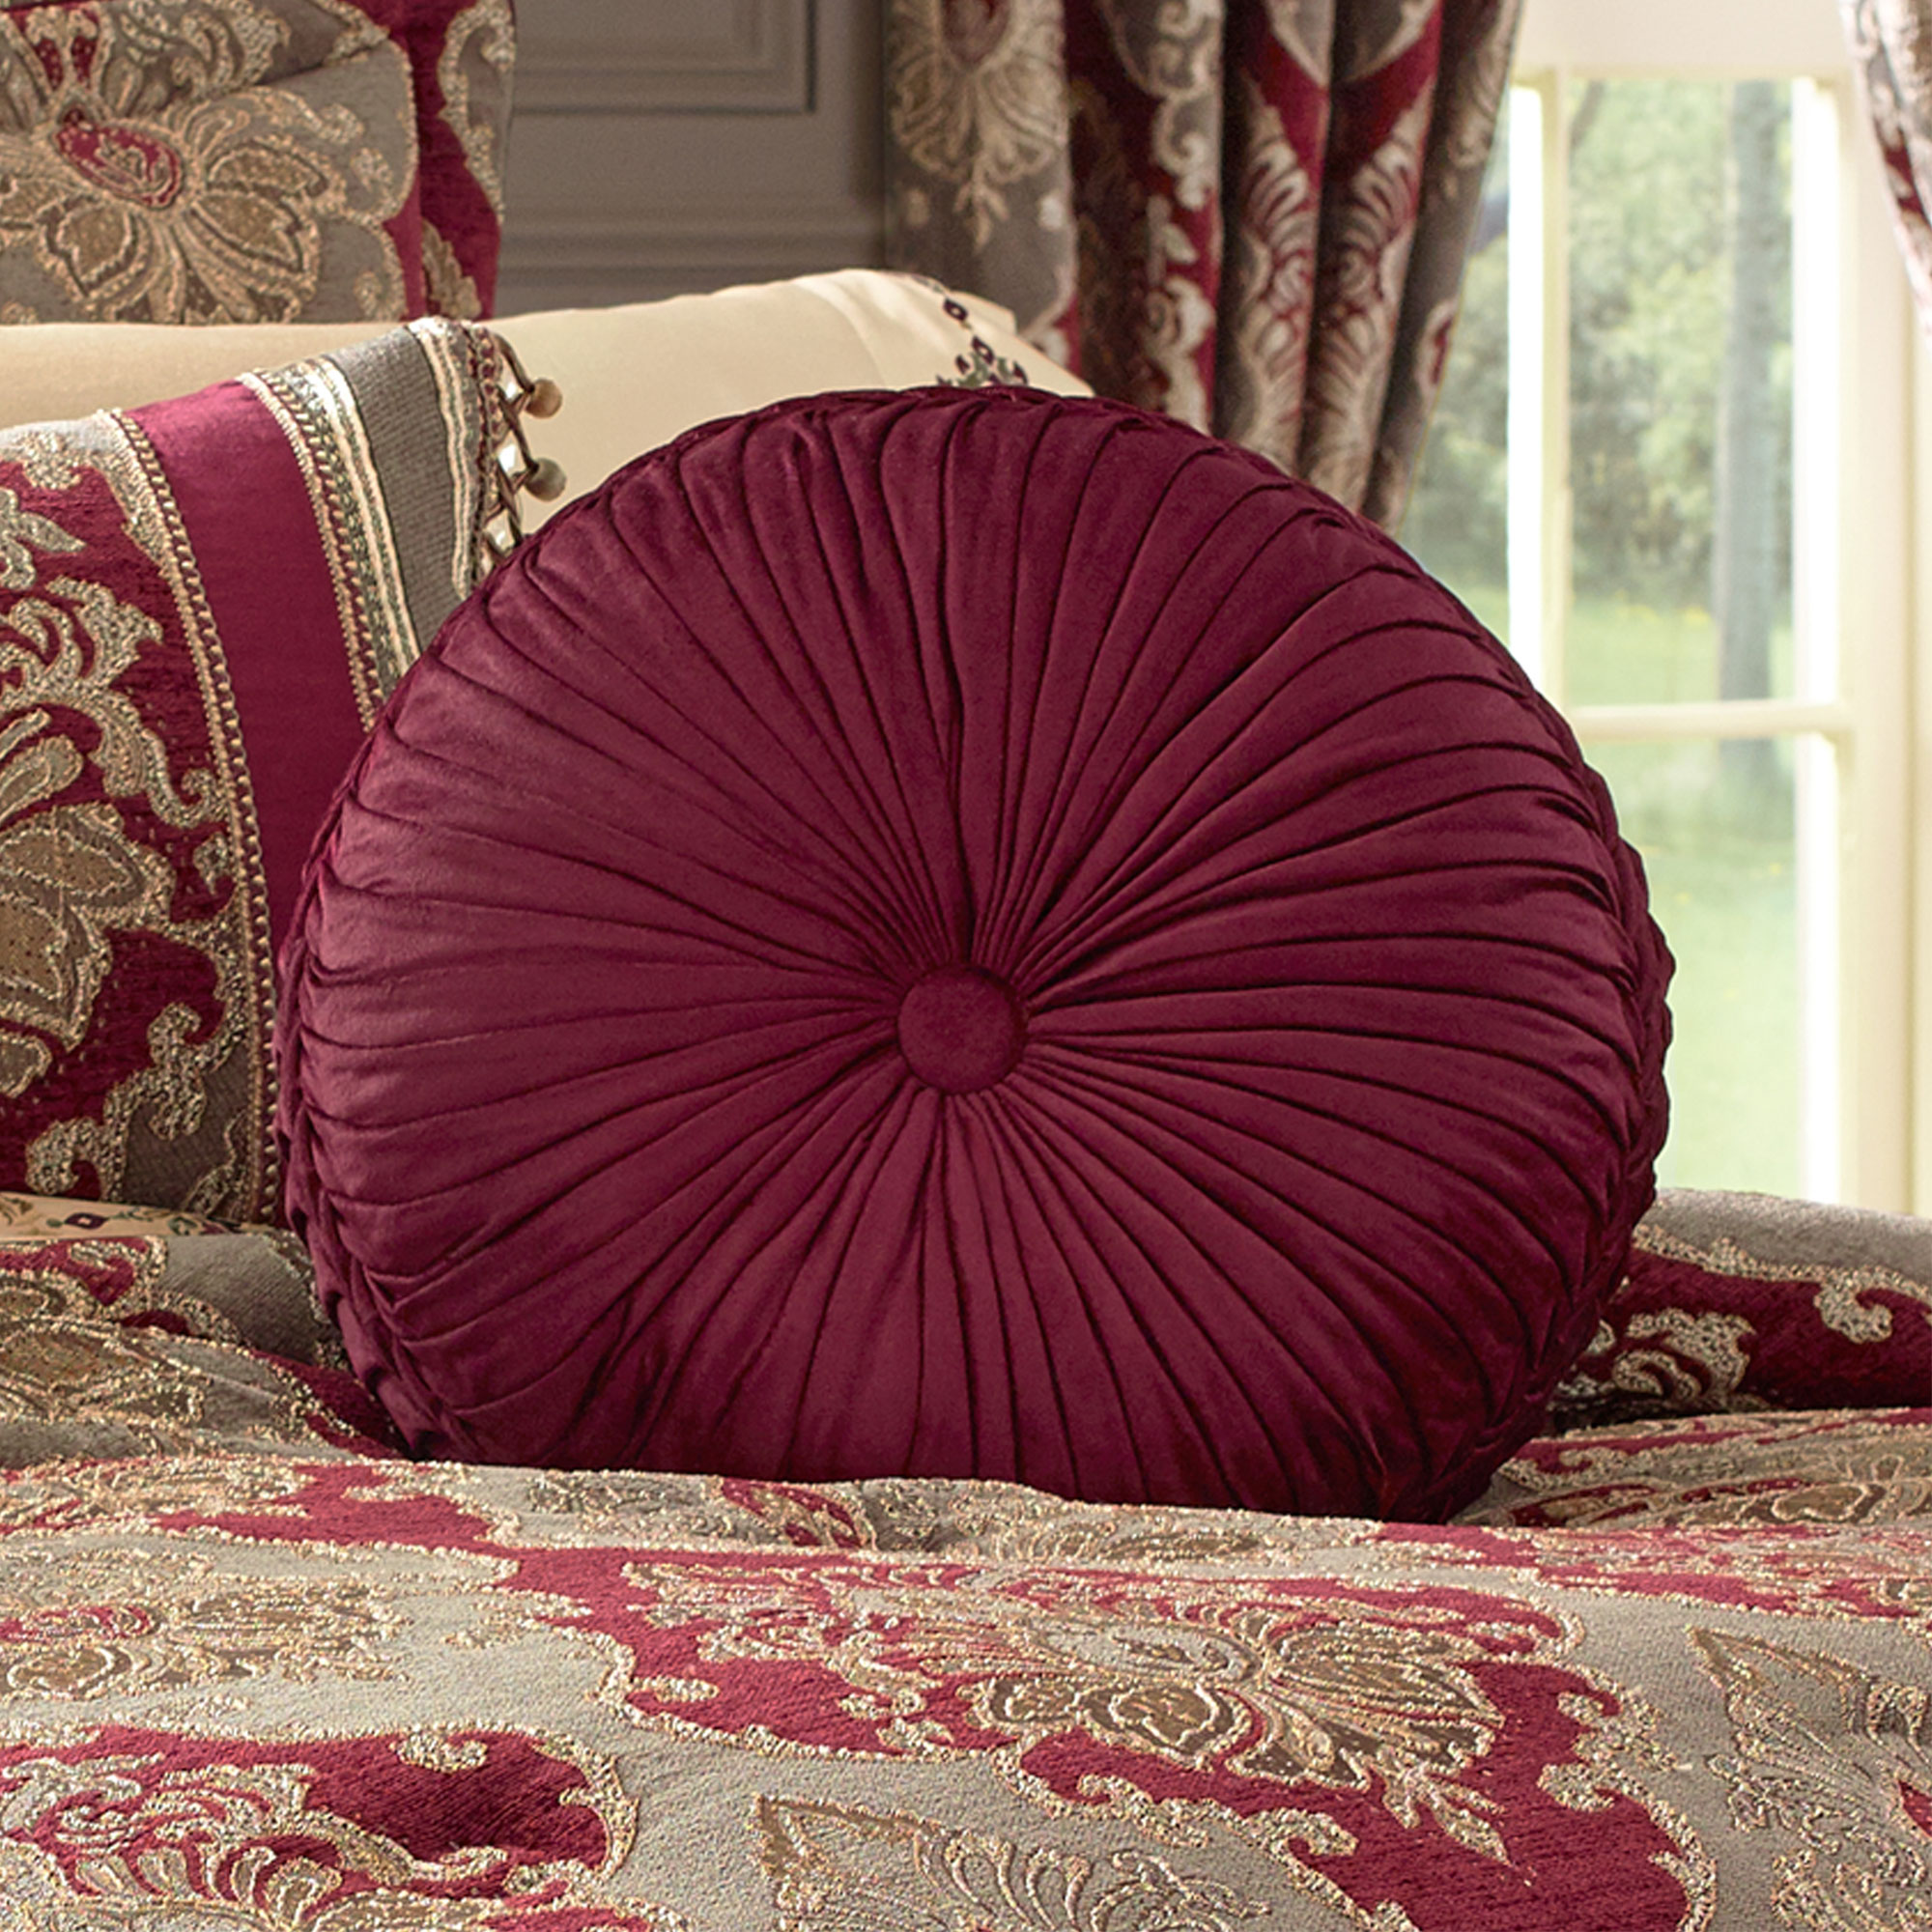 Crimson Cal King 4 Piece Comforter Set